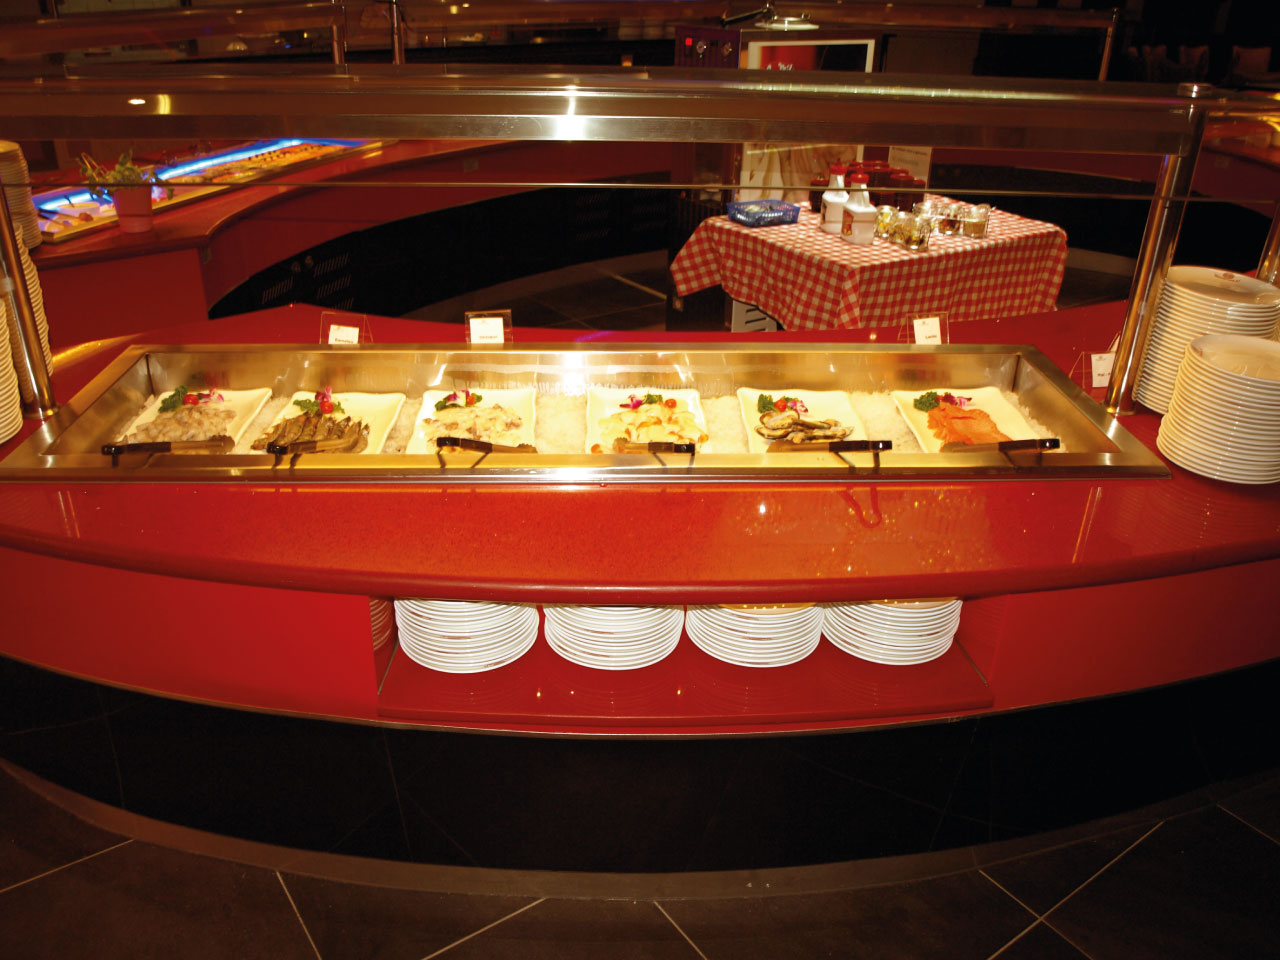 hyl_images_1280x960_buffet_1